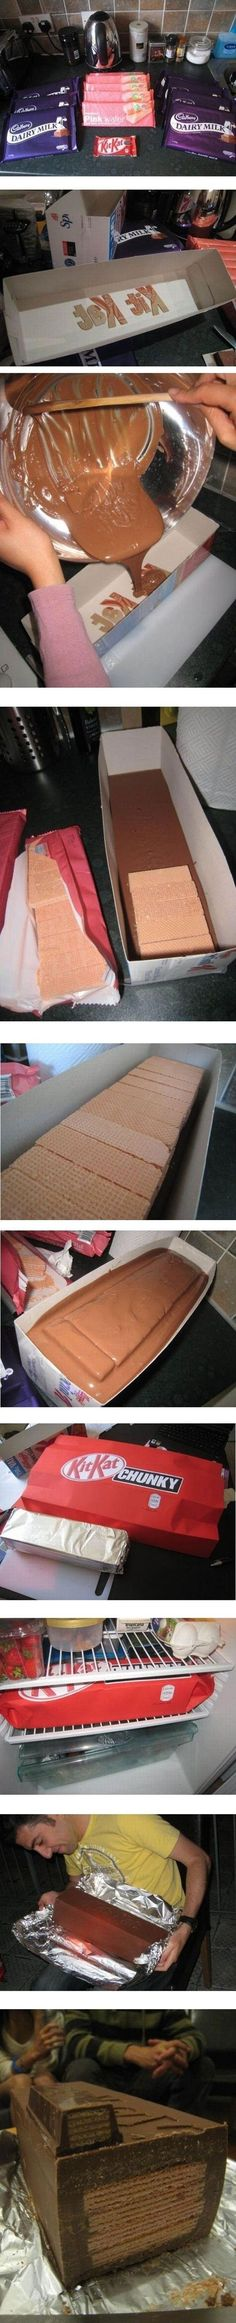 HOW TO MAKE: GIANT KIT KAT BAR! I LOVE KIT-KAT BARS!!!